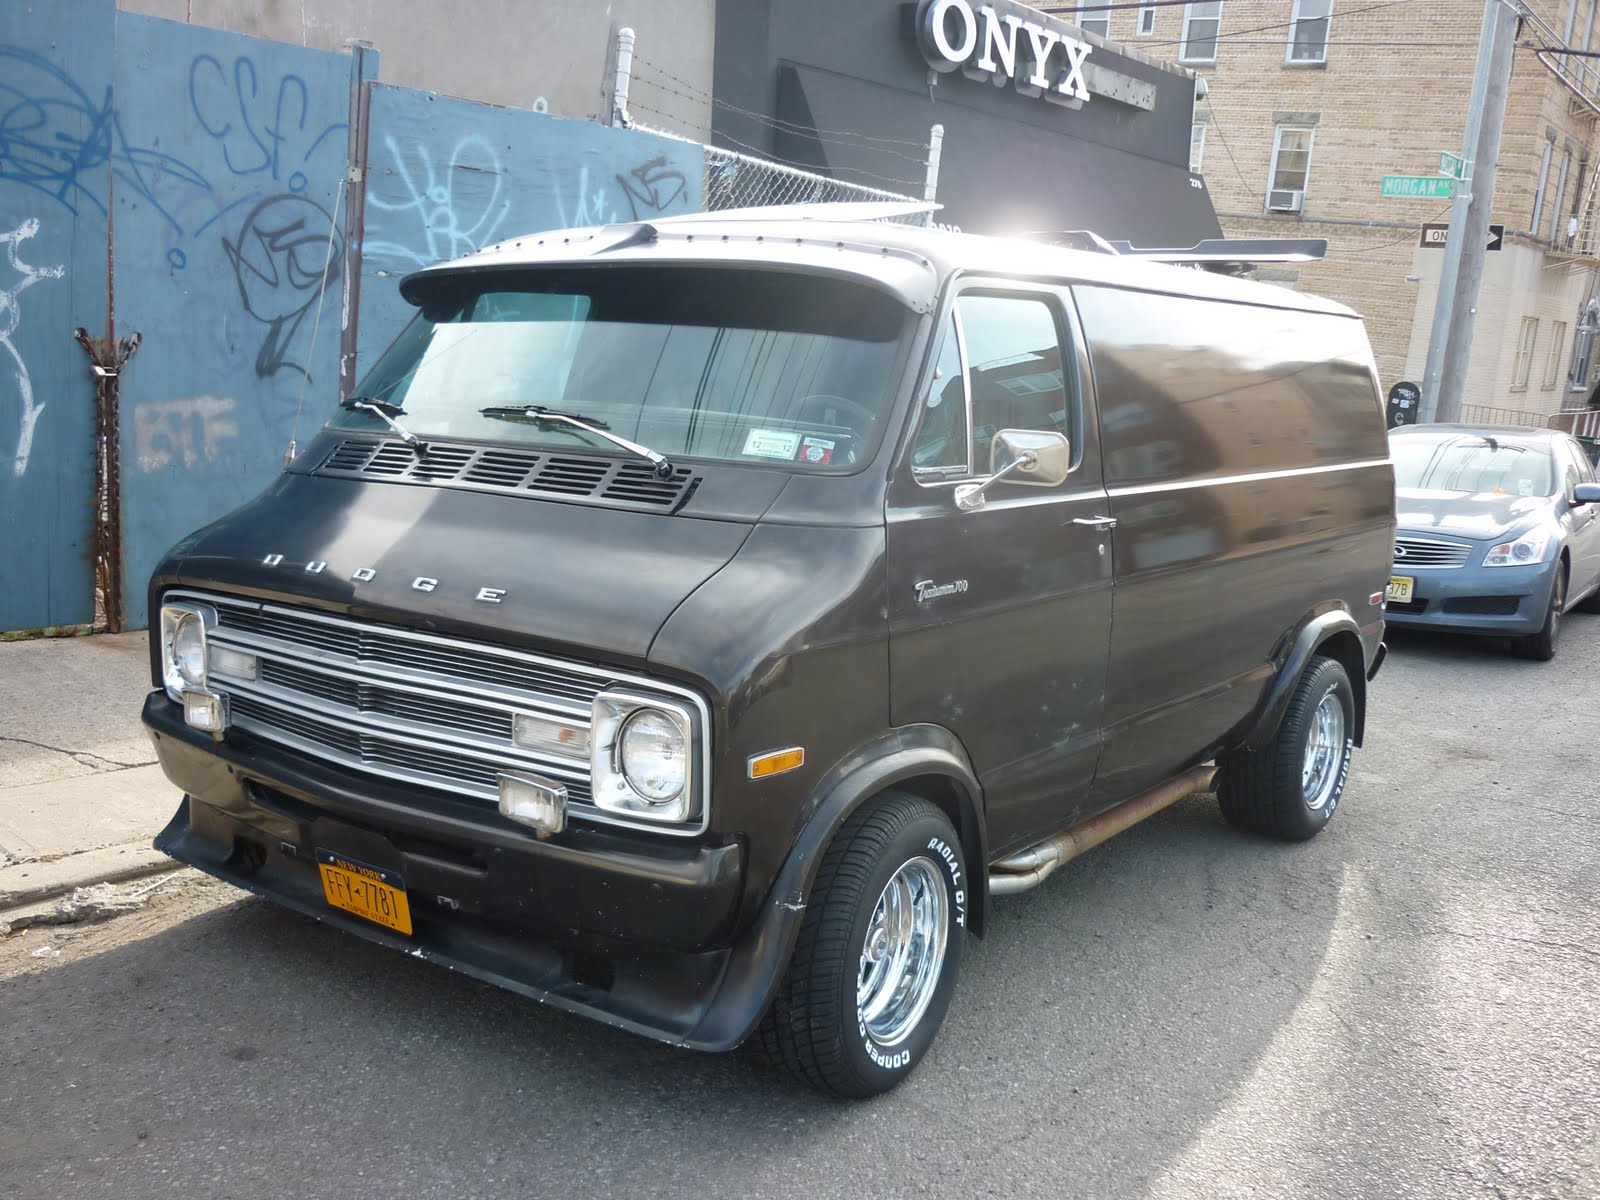 1977 Dodge Van for Sale http://www.deathscience.com/2011/03/looking-to-sell-or-trade-my-1977-dodge.html